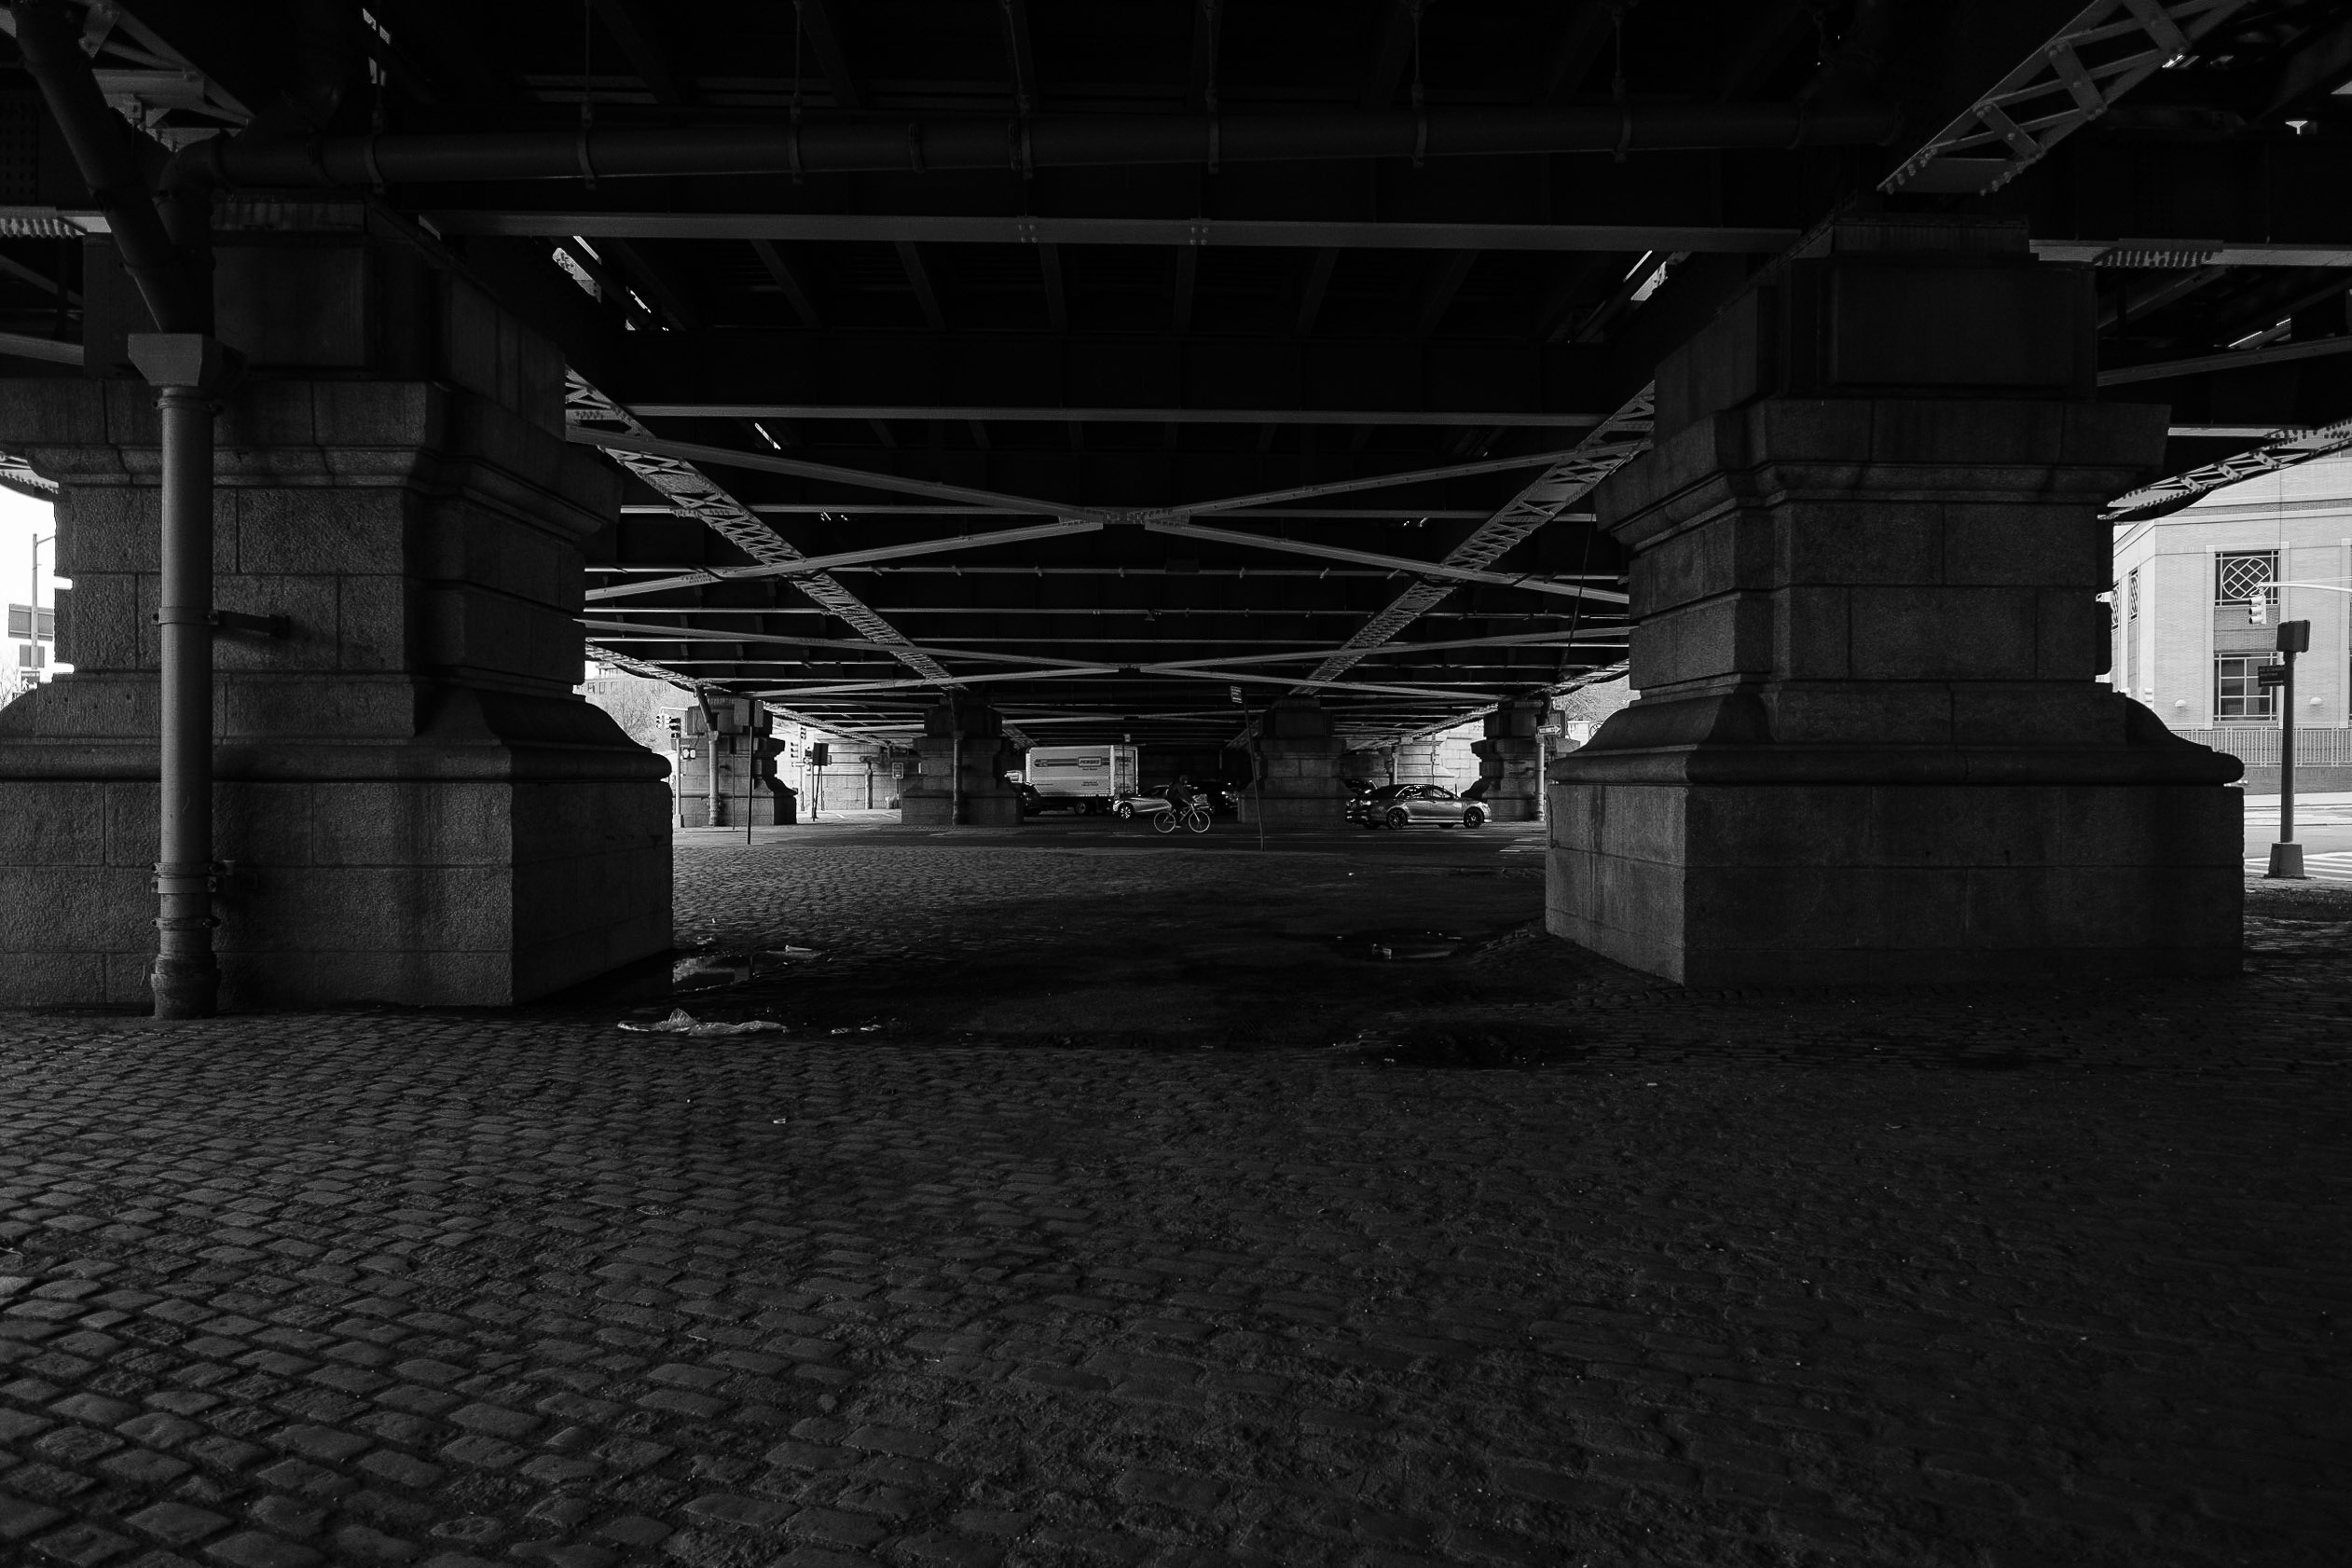 under-the-brooklyn-bridge-black-and-white-zach-barocas-photography